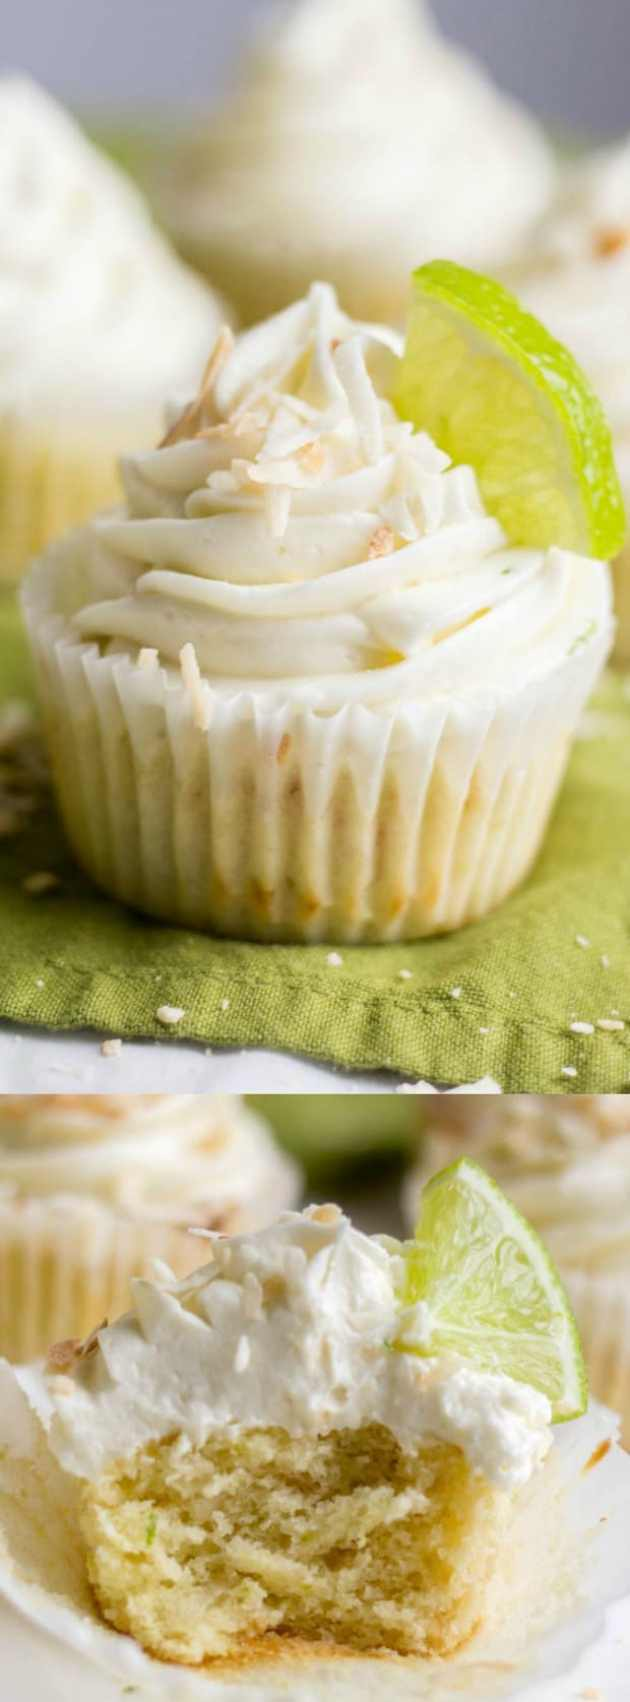 Coconut Lime Cupcakes Longpin